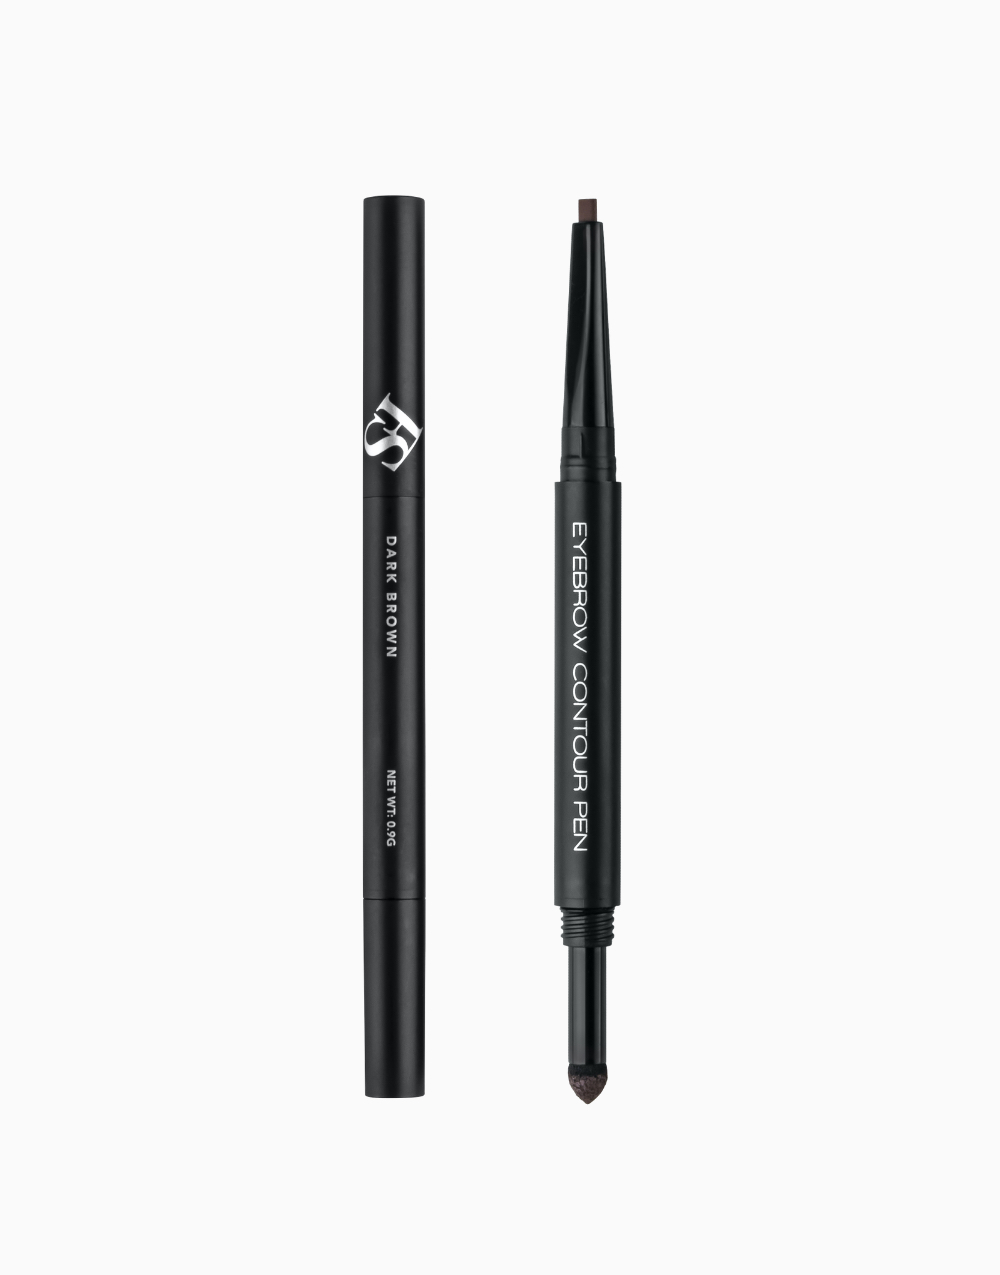 Eyebrow Contour Pen by FS Features & Shades | Dark Brown